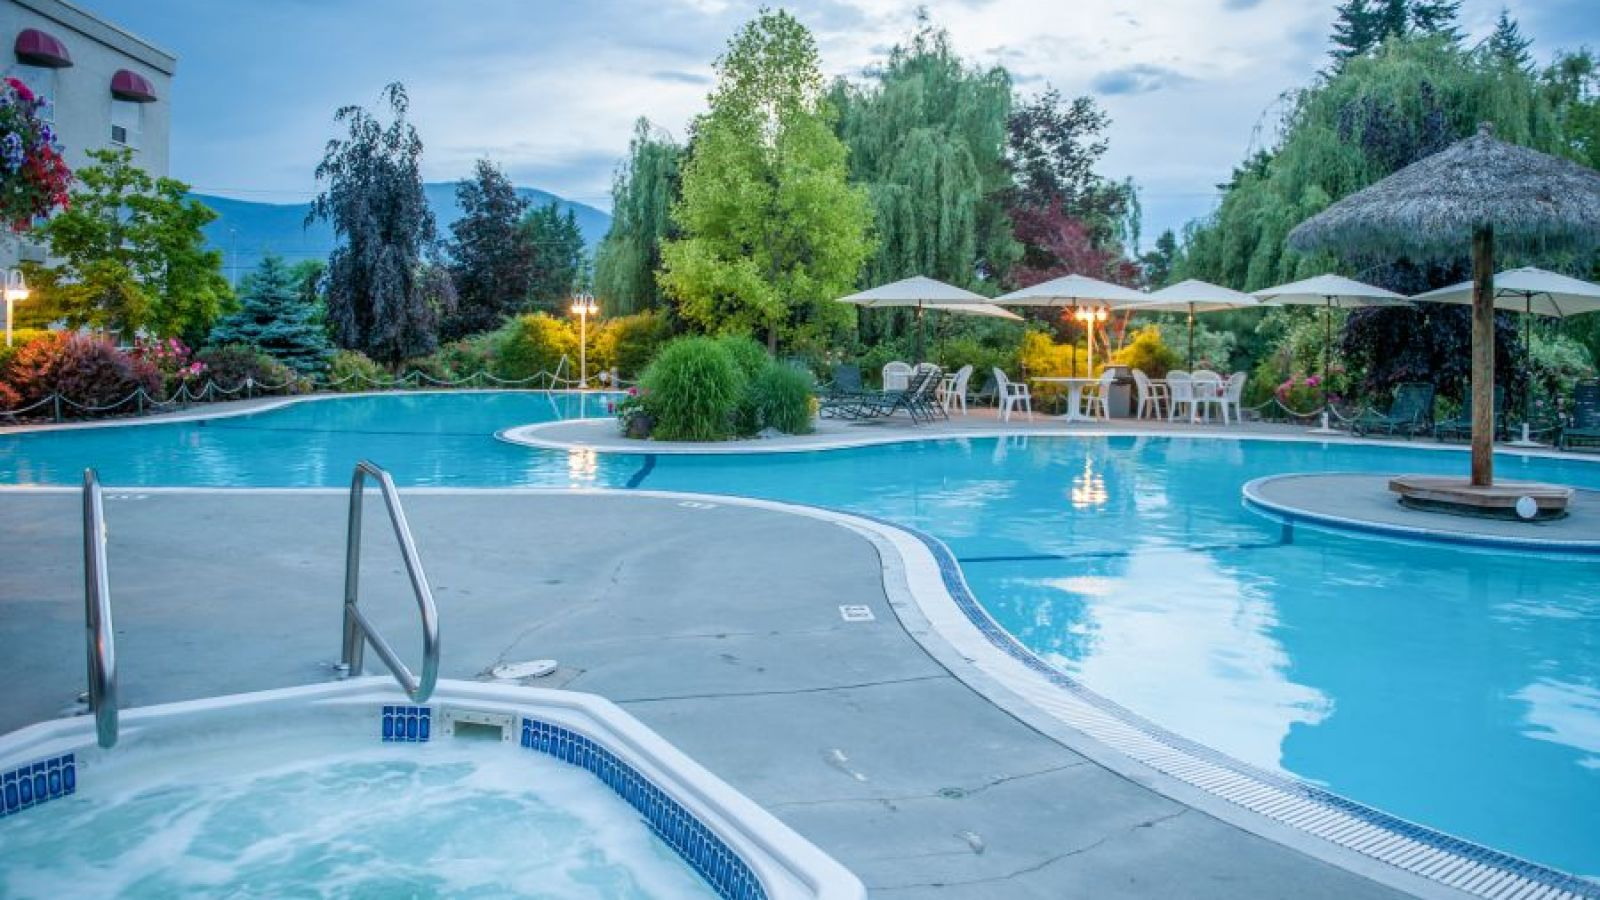 Outdoor Pool Oasis at the Hilltop Inn Salmon Arm